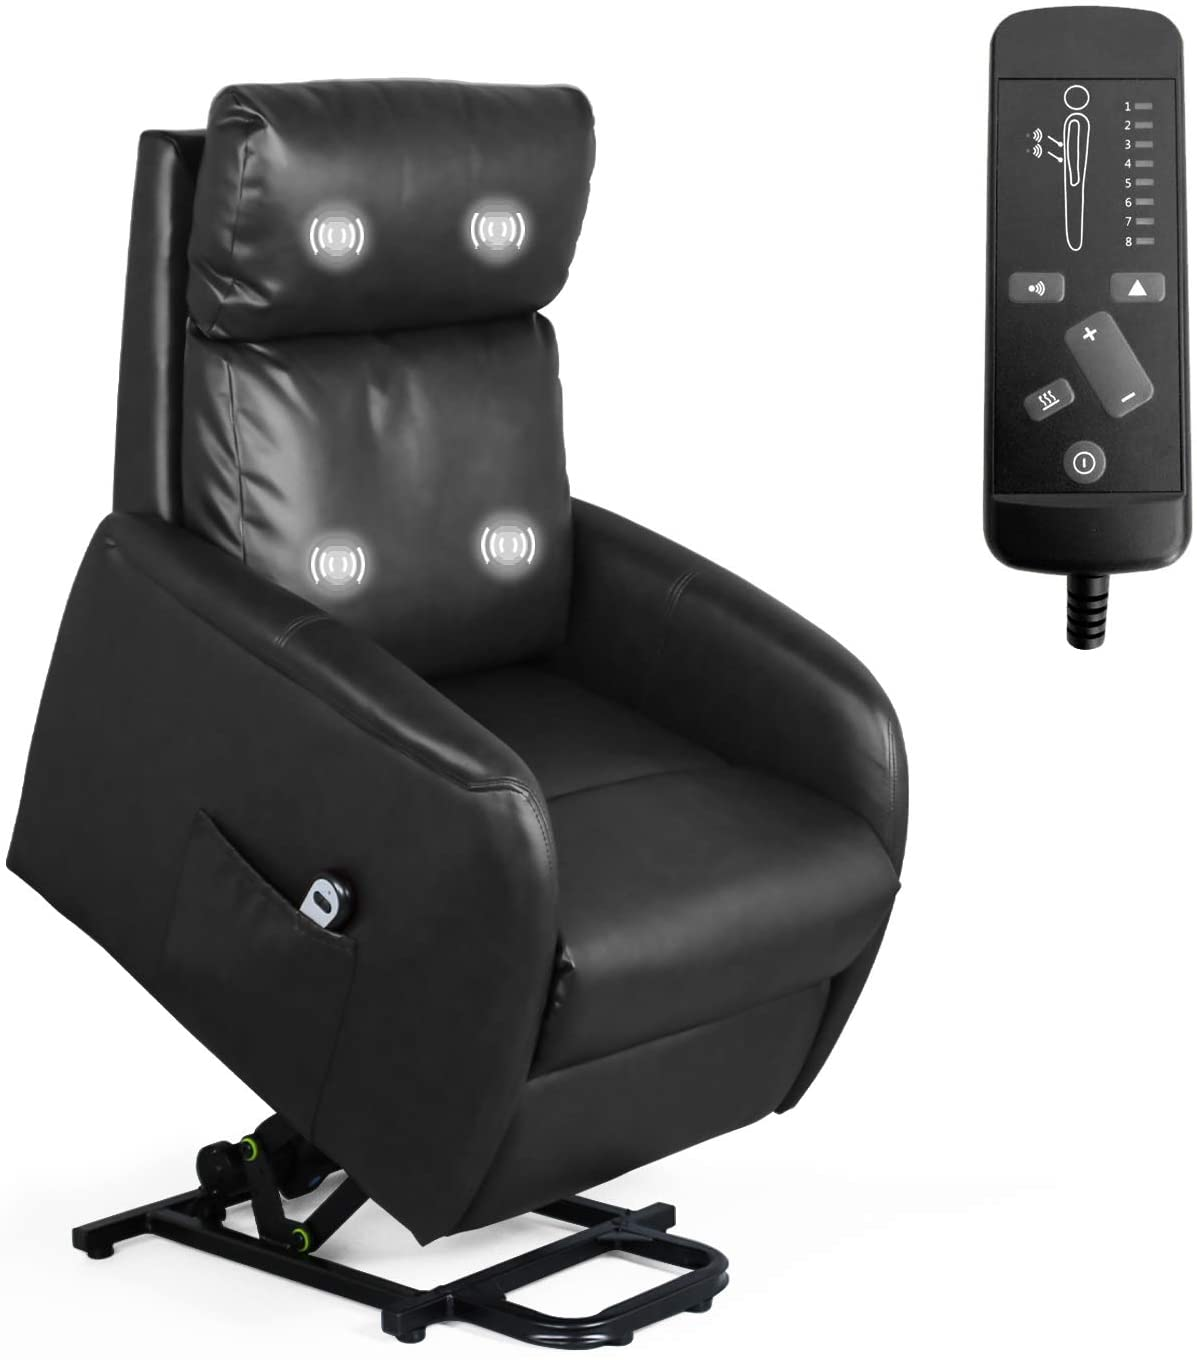 Recliner Chair for Living Room Power Lift Massage Recliner Chair for Elderly Modern Recliner Sofa Home Theater Seating Office Massage Recliner Sofa Leisure Lounge with Side Pocket PU Leather (Black)